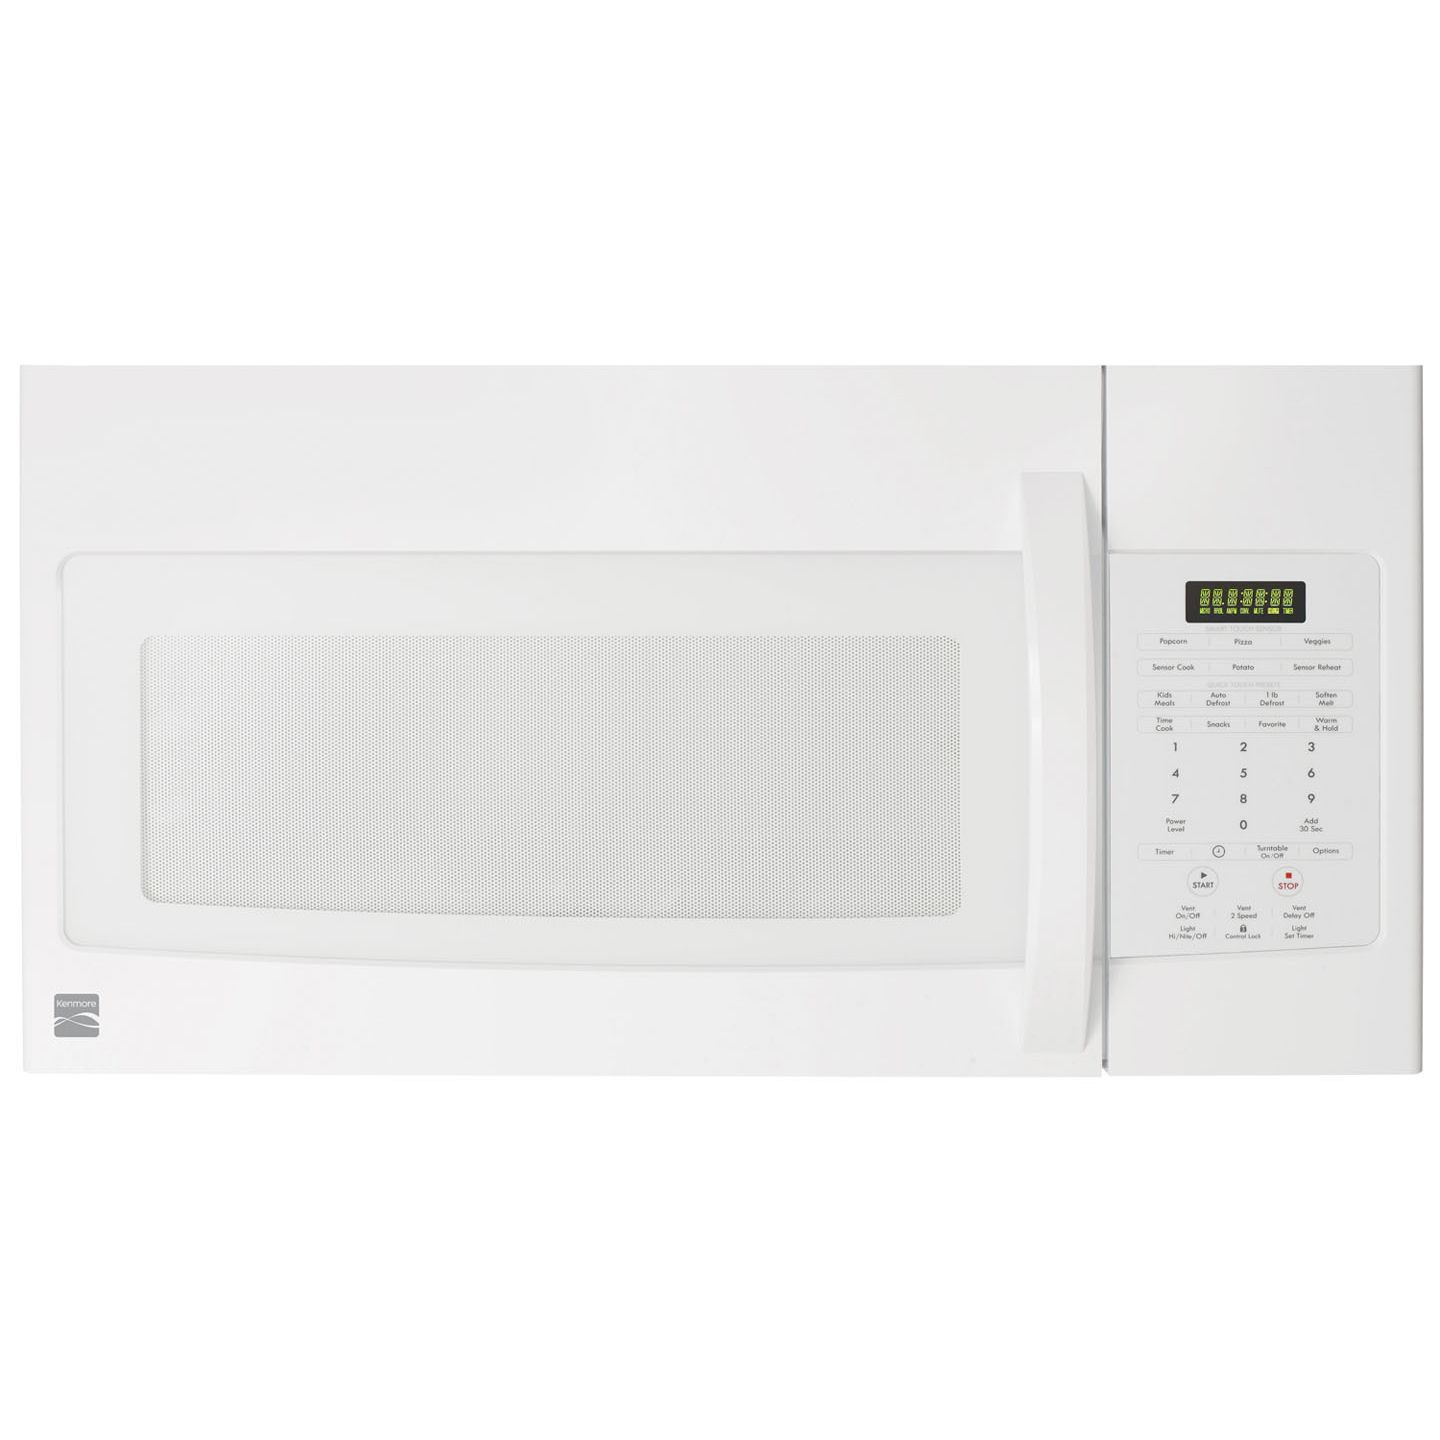 kenmore 85042 1 7 cu ft over the range microwave oven white